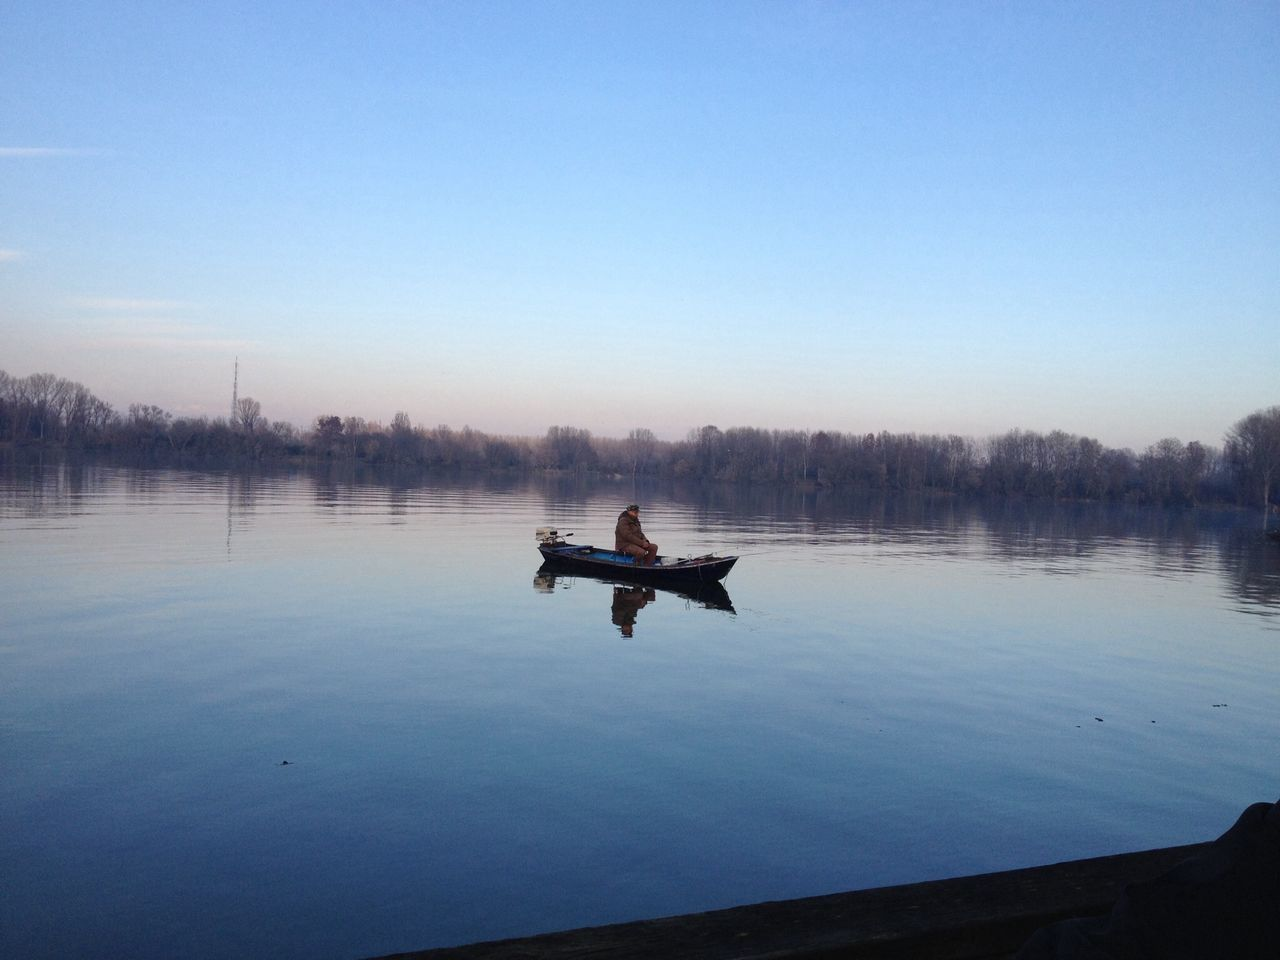 water, nature, nautical vessel, copy space, tranquility, transportation, clear sky, outdoors, tranquil scene, beauty in nature, lake, sky, blue, day, scenics, one person, tree, men, adventure, real people, rowing, oar, one man only, people